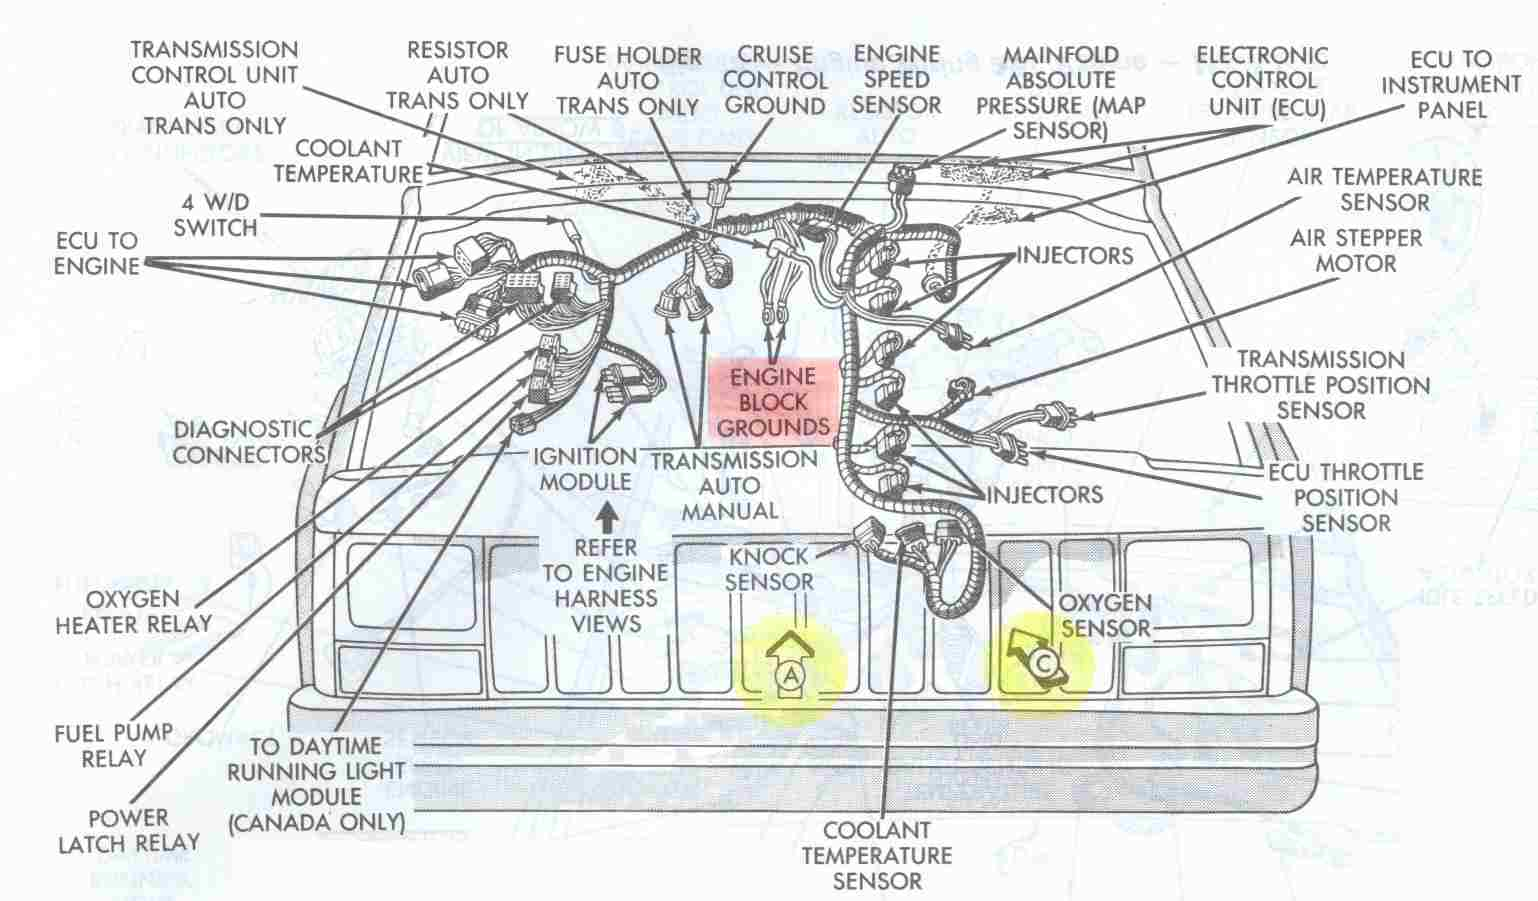 2004 jeep grand cherokee engine diagram nx nitrous wiring wj free image for user manual